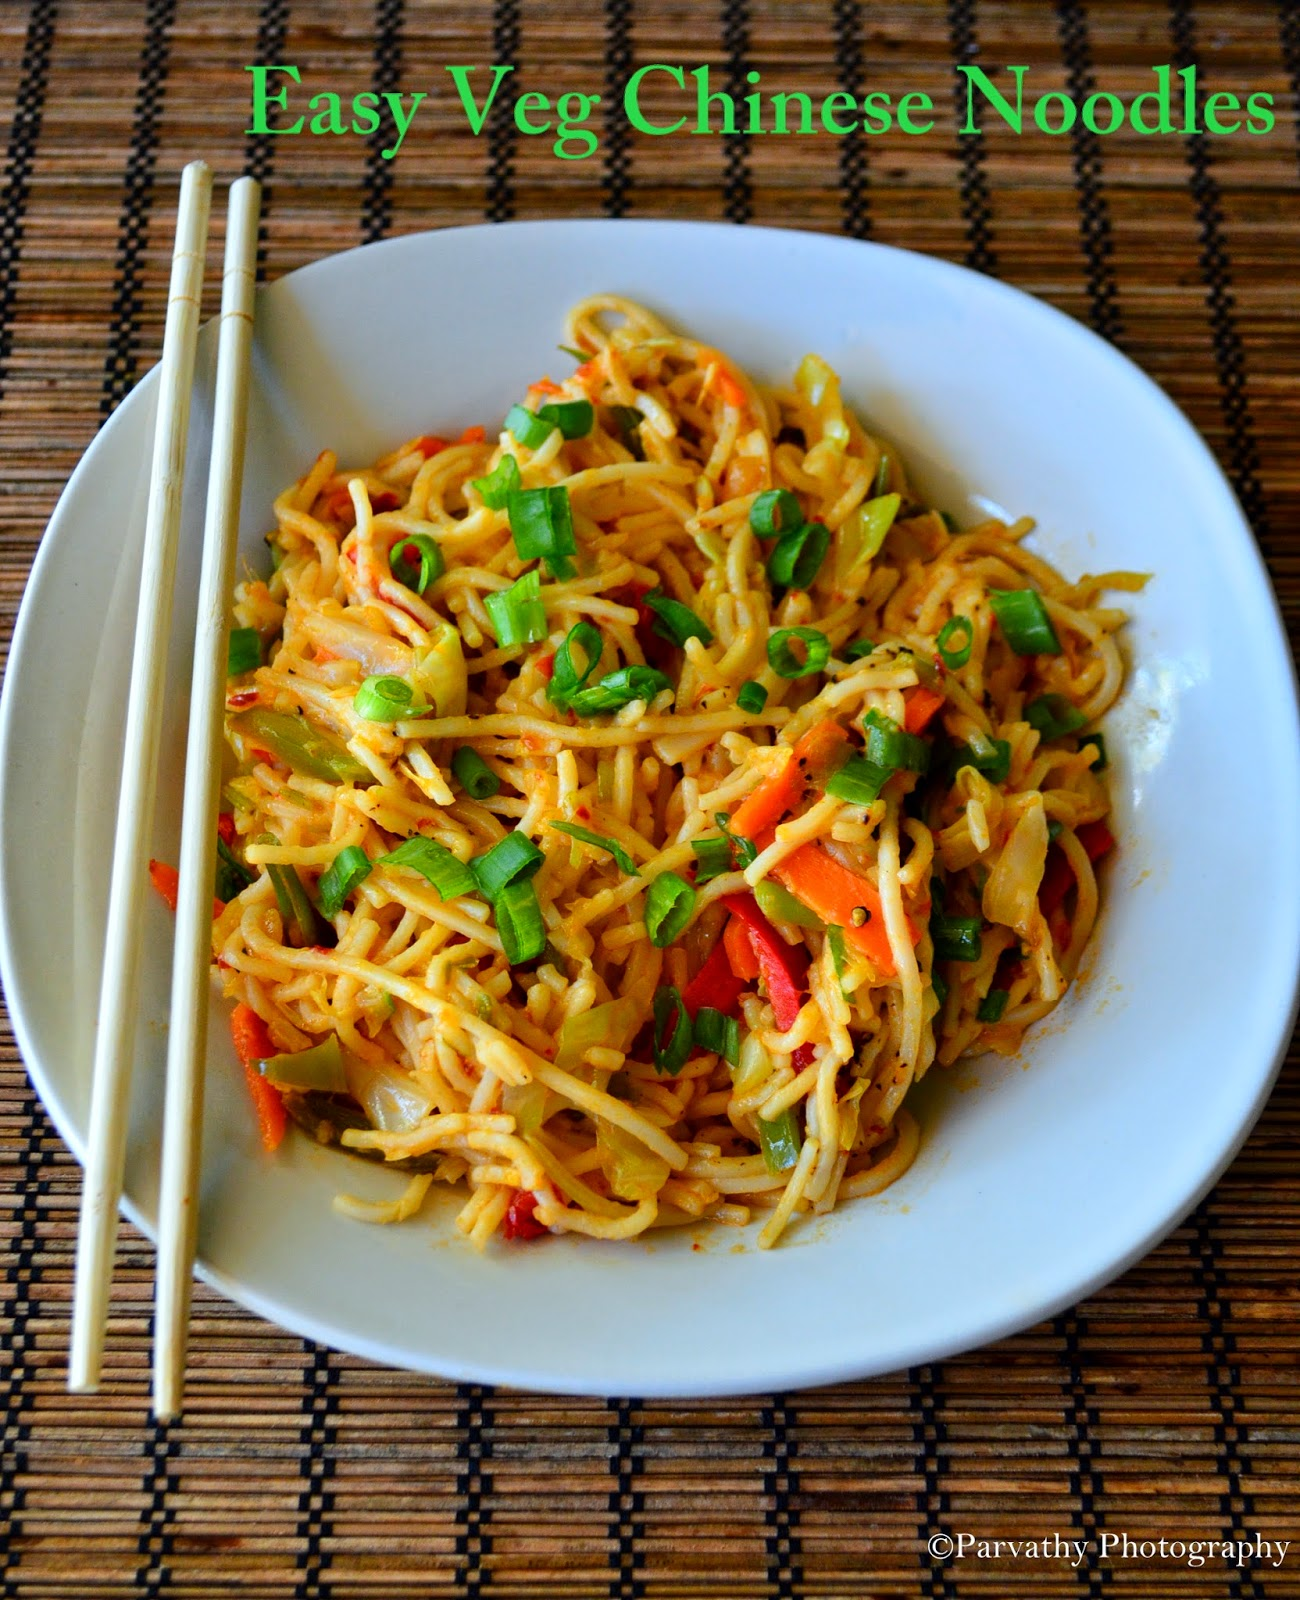 Indian food recipes indian recipes desi food desi recipes restaurant style chinese noodle recipe indo chinese noodle recipe easy veg chinese noodles forumfinder Images